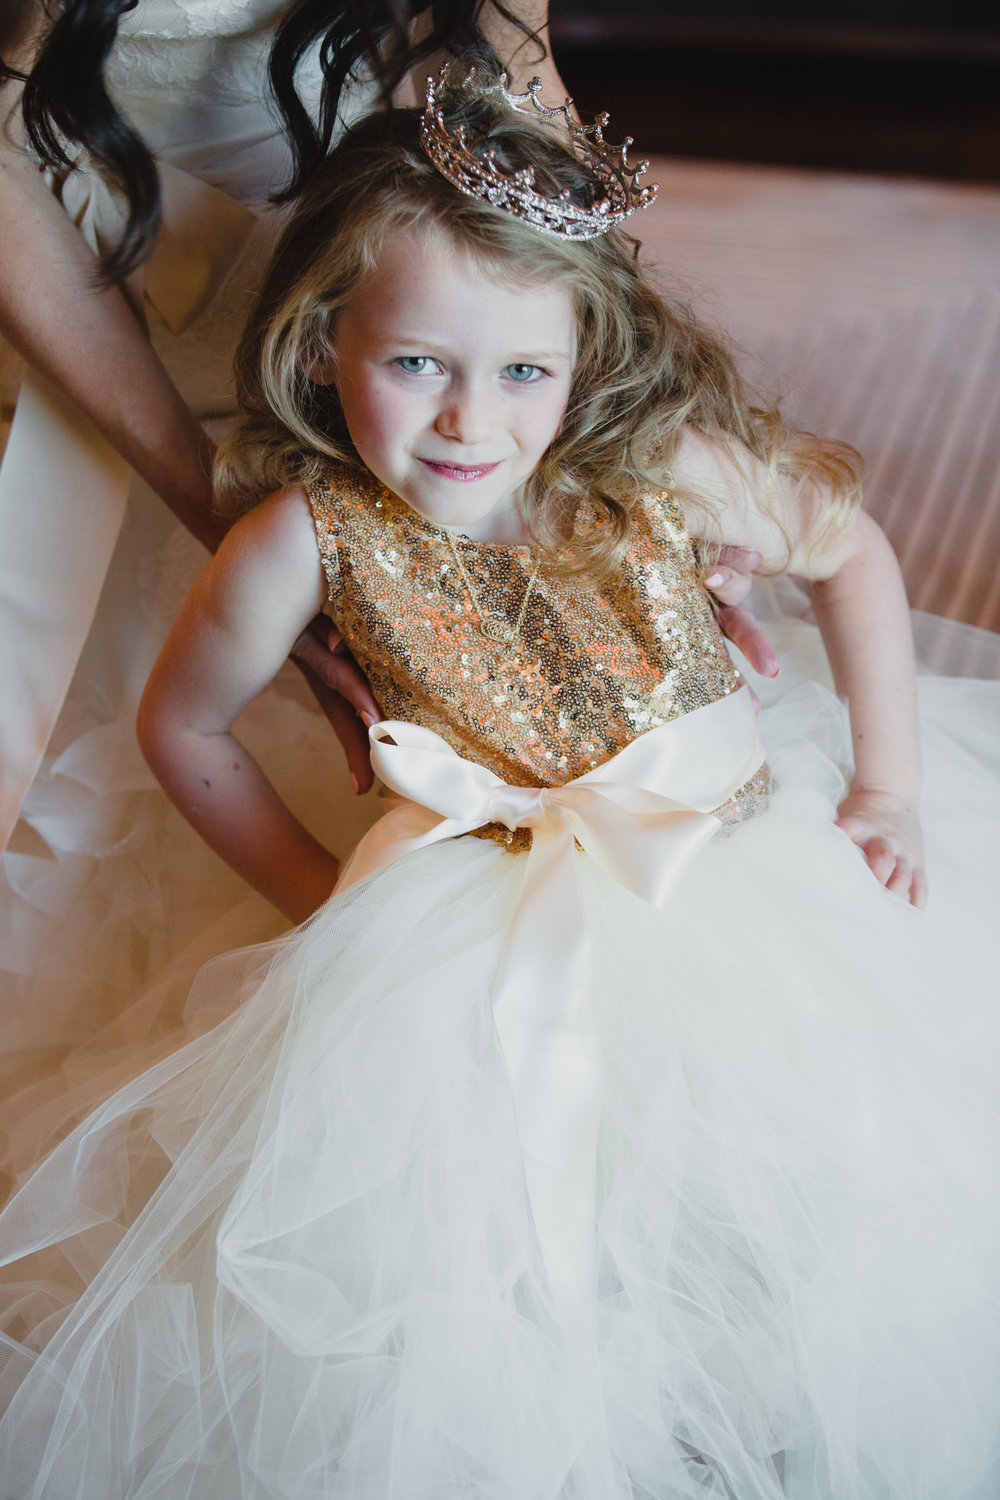 Princess crown on flower girl. Luxury wedding at the Mandarin Oriental with a color scheme of white, blush, and pops of wine red produced by Las Vegas Wedding Planner Andrea Eppolito with photos by Stephen Salazar Photography.